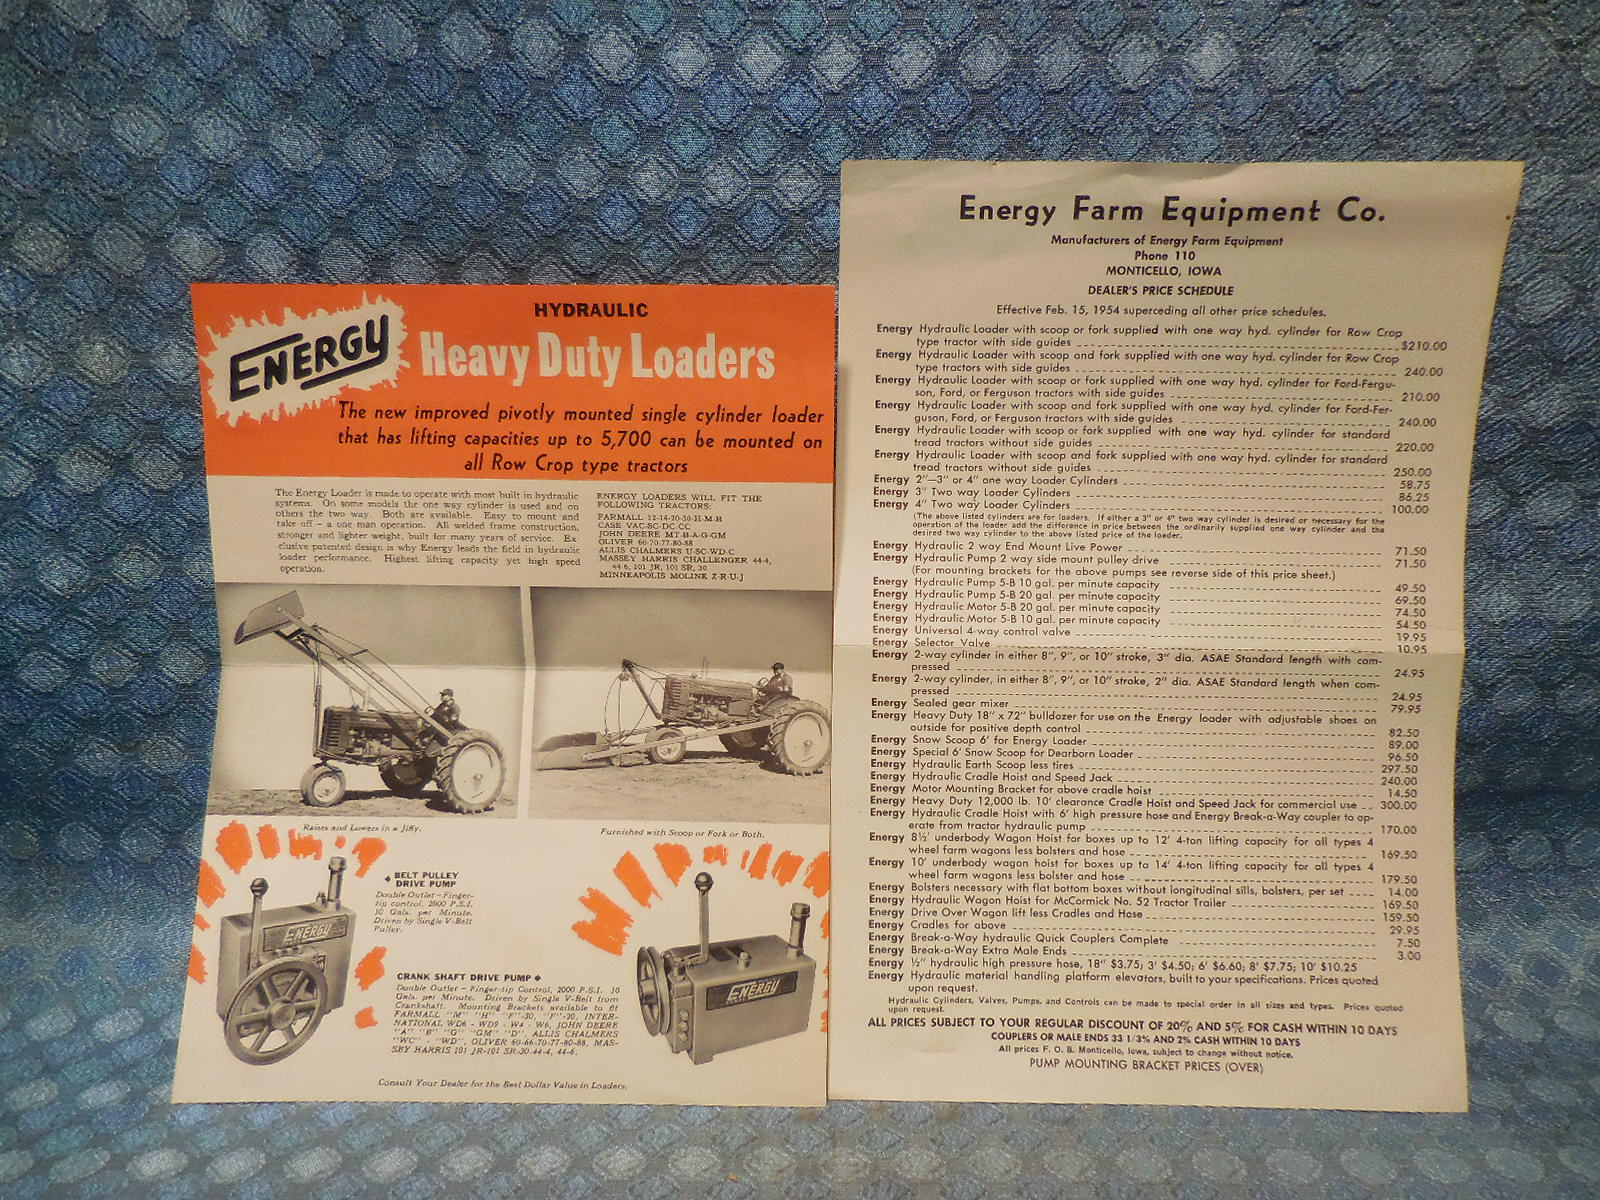 1954 Energy Hydraulic Loaders for Tractors Original Sales And Price Sheets  - NOS Texas Parts, LLC - Antique Auto Parts